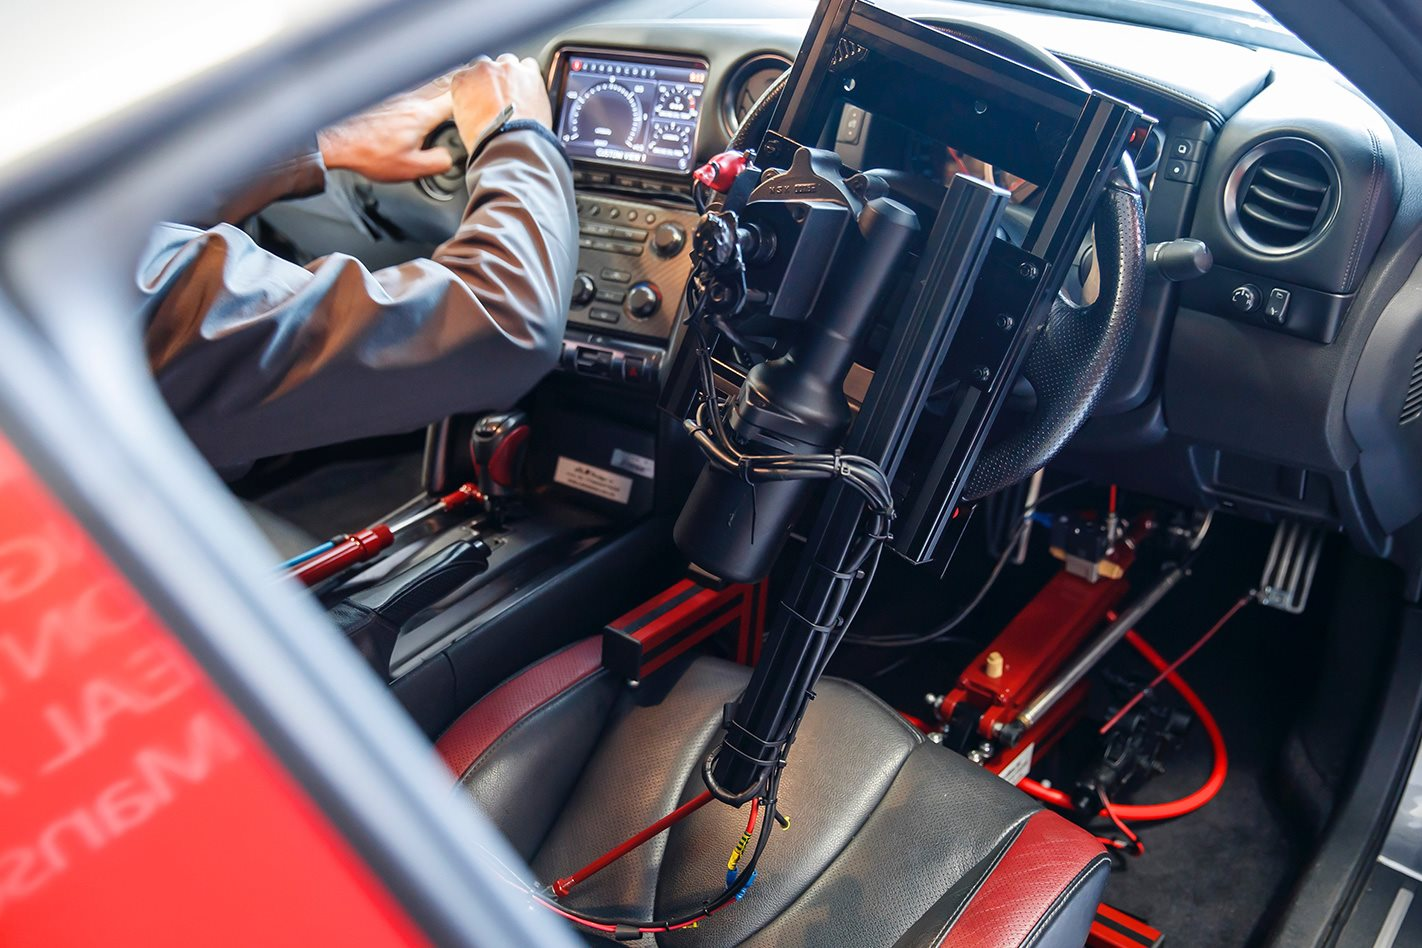 World's first PS4 controller-operated Nissan GT-R